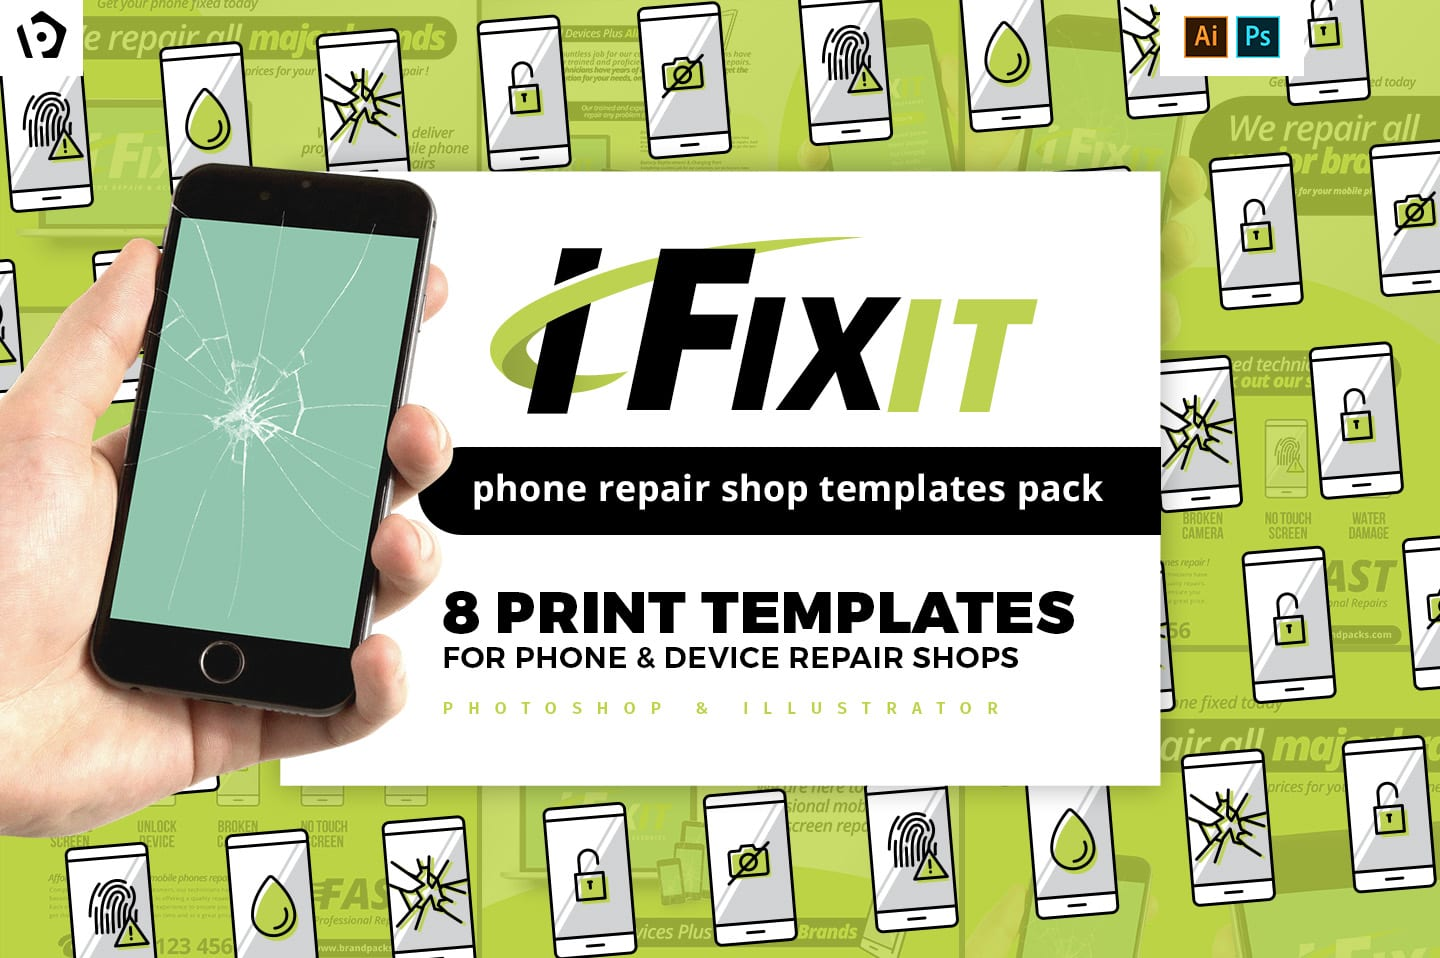 Phone Repair Shop Templates Pack